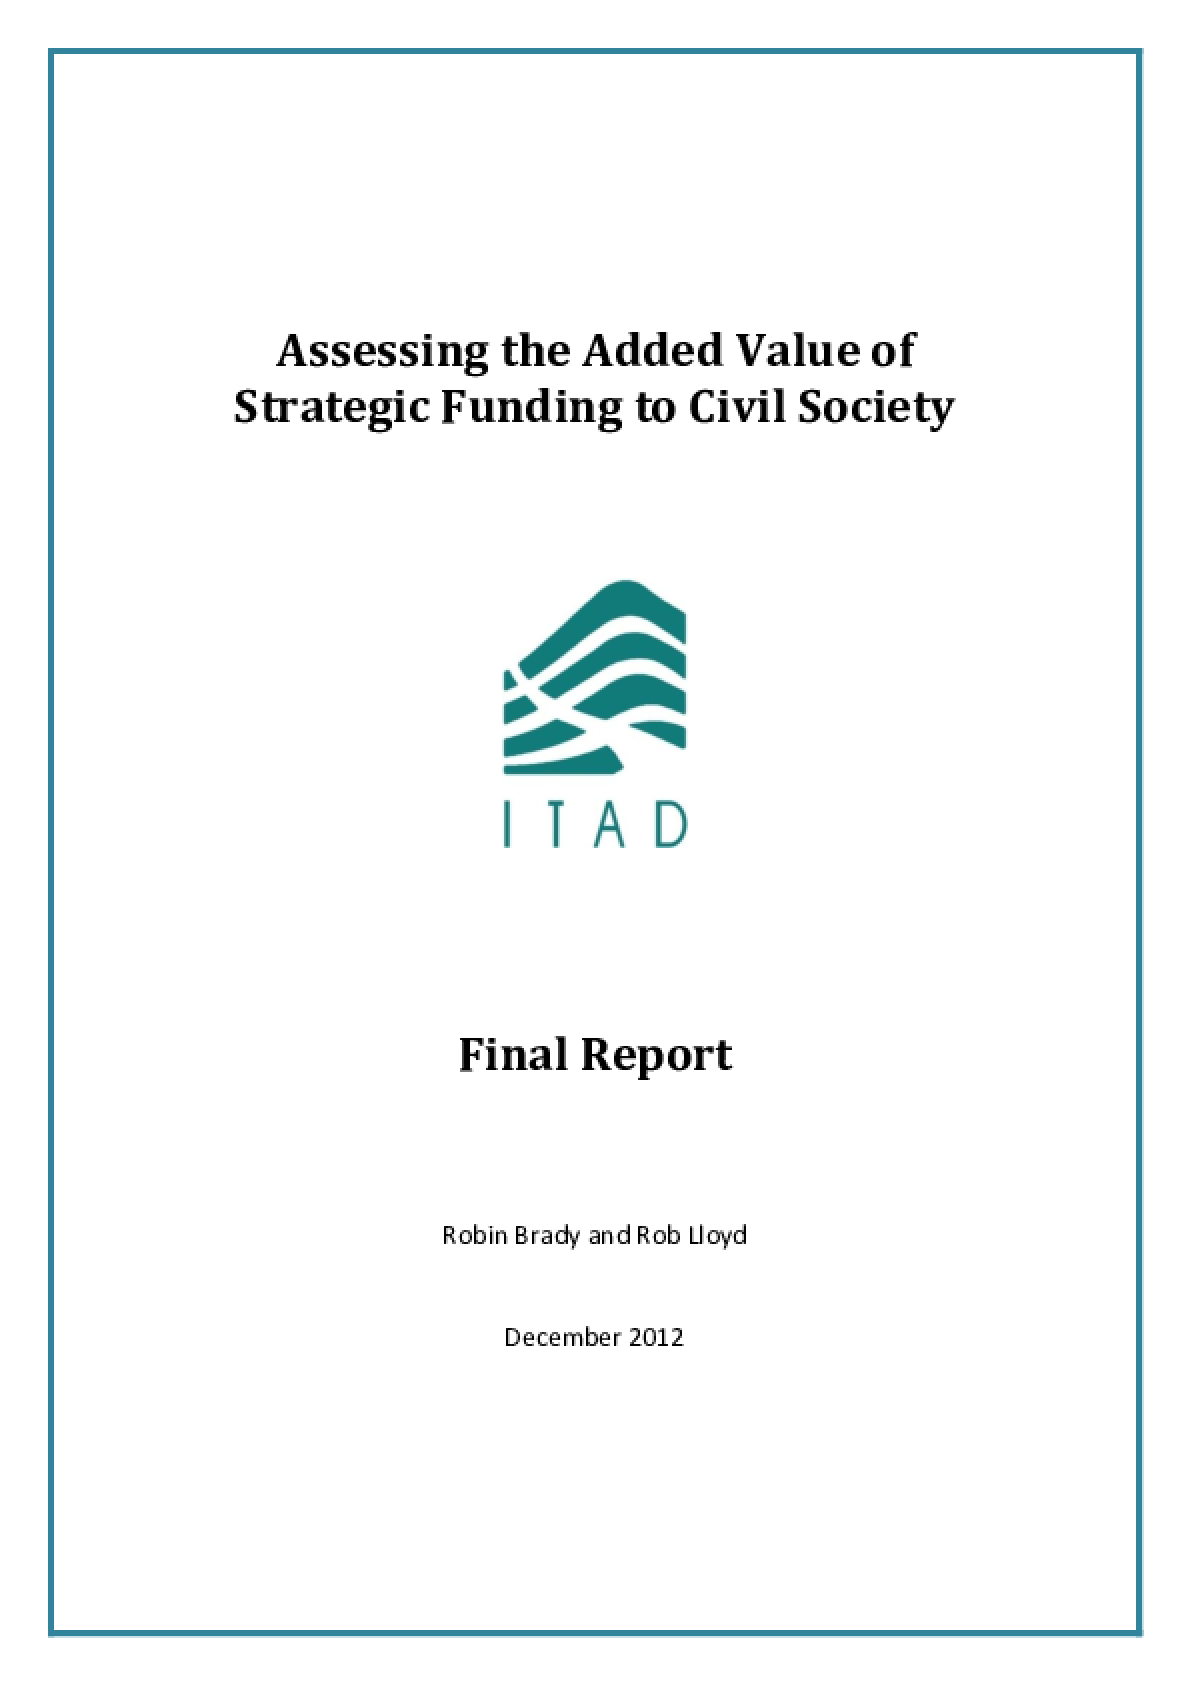 Assessing the Added Value of Strategic Funding to Civil Society